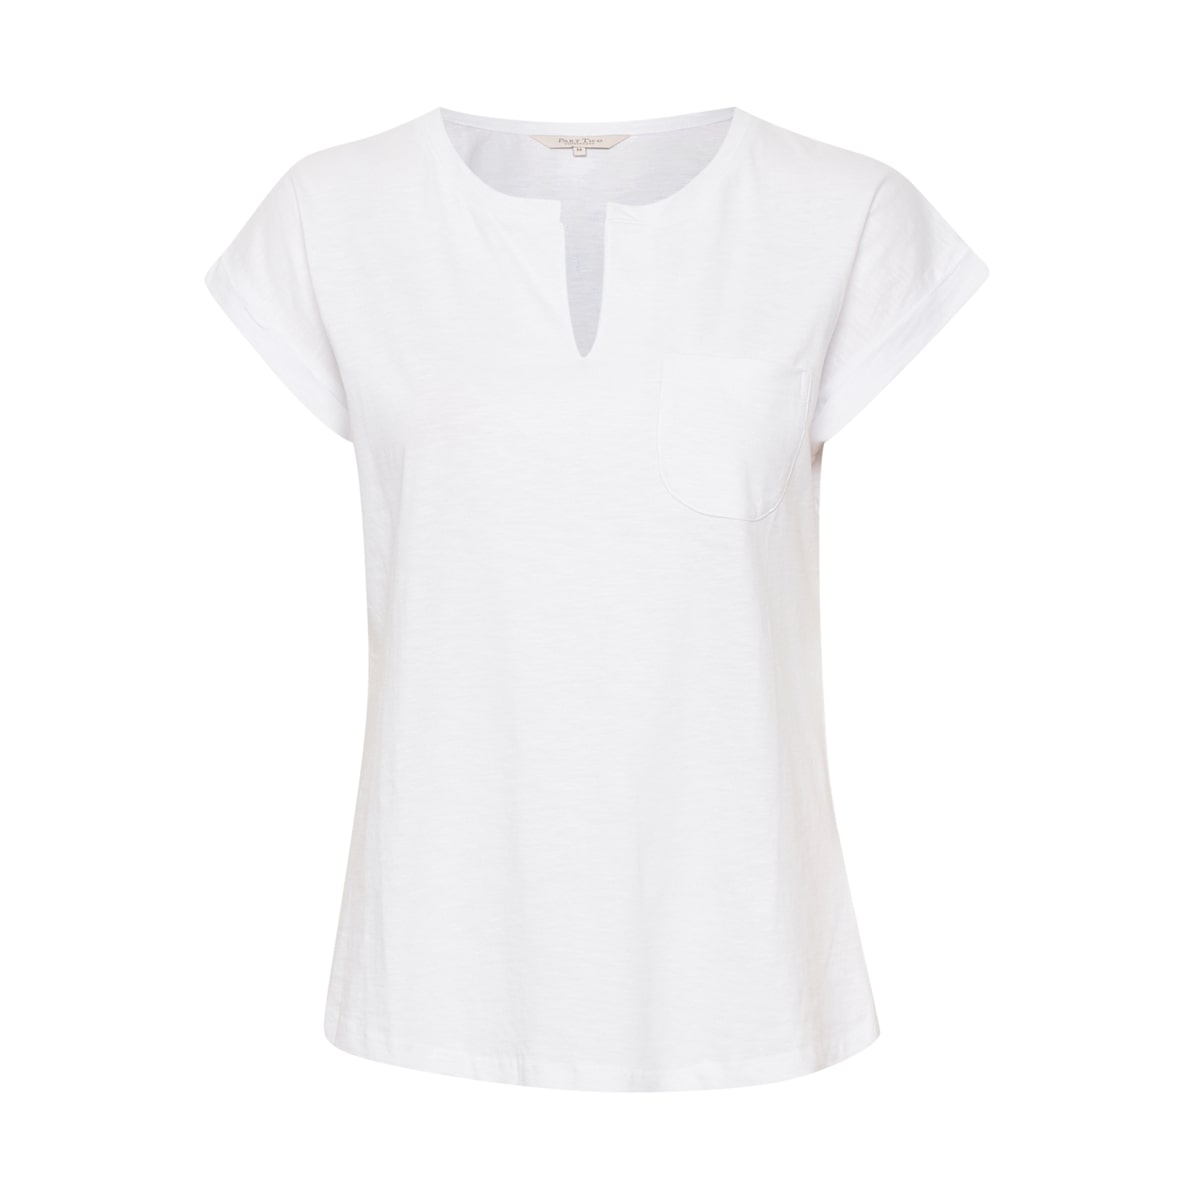 Kedita Top White by Part Two | Restoration Yard